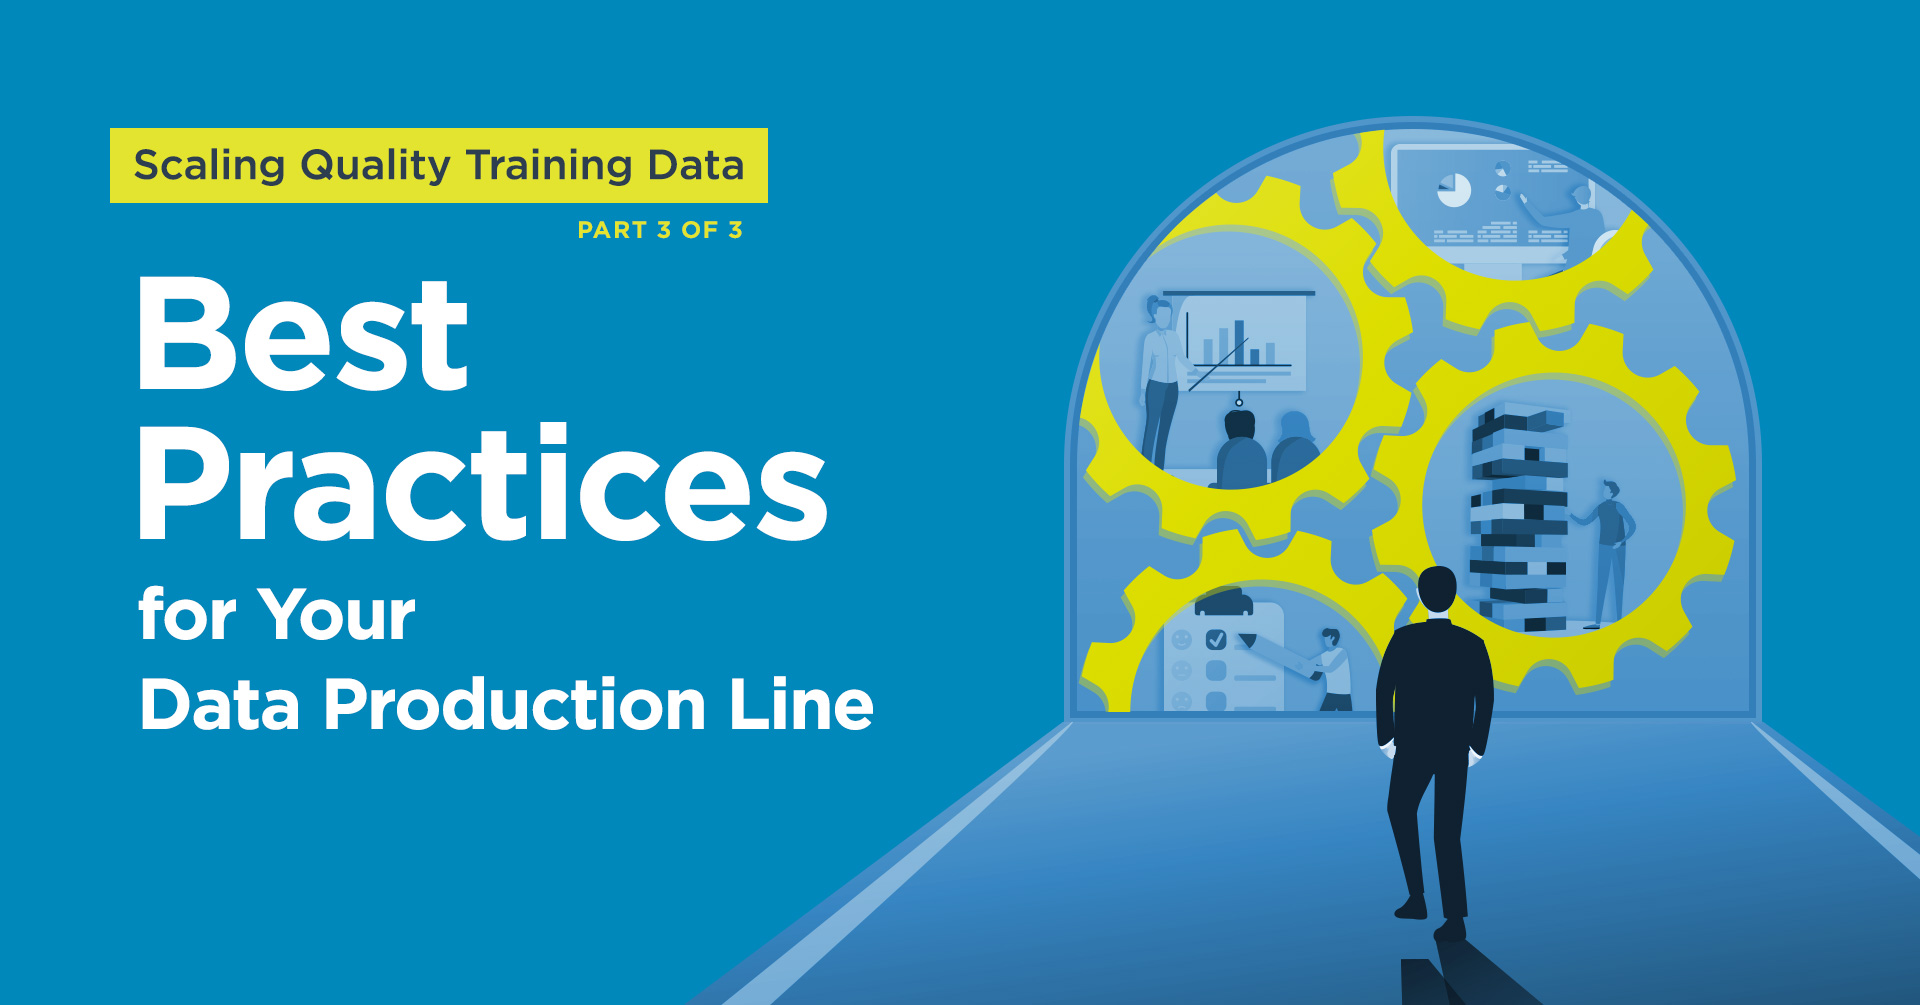 Scaling Quality Training Data: Best Practices for Your Data Production Line